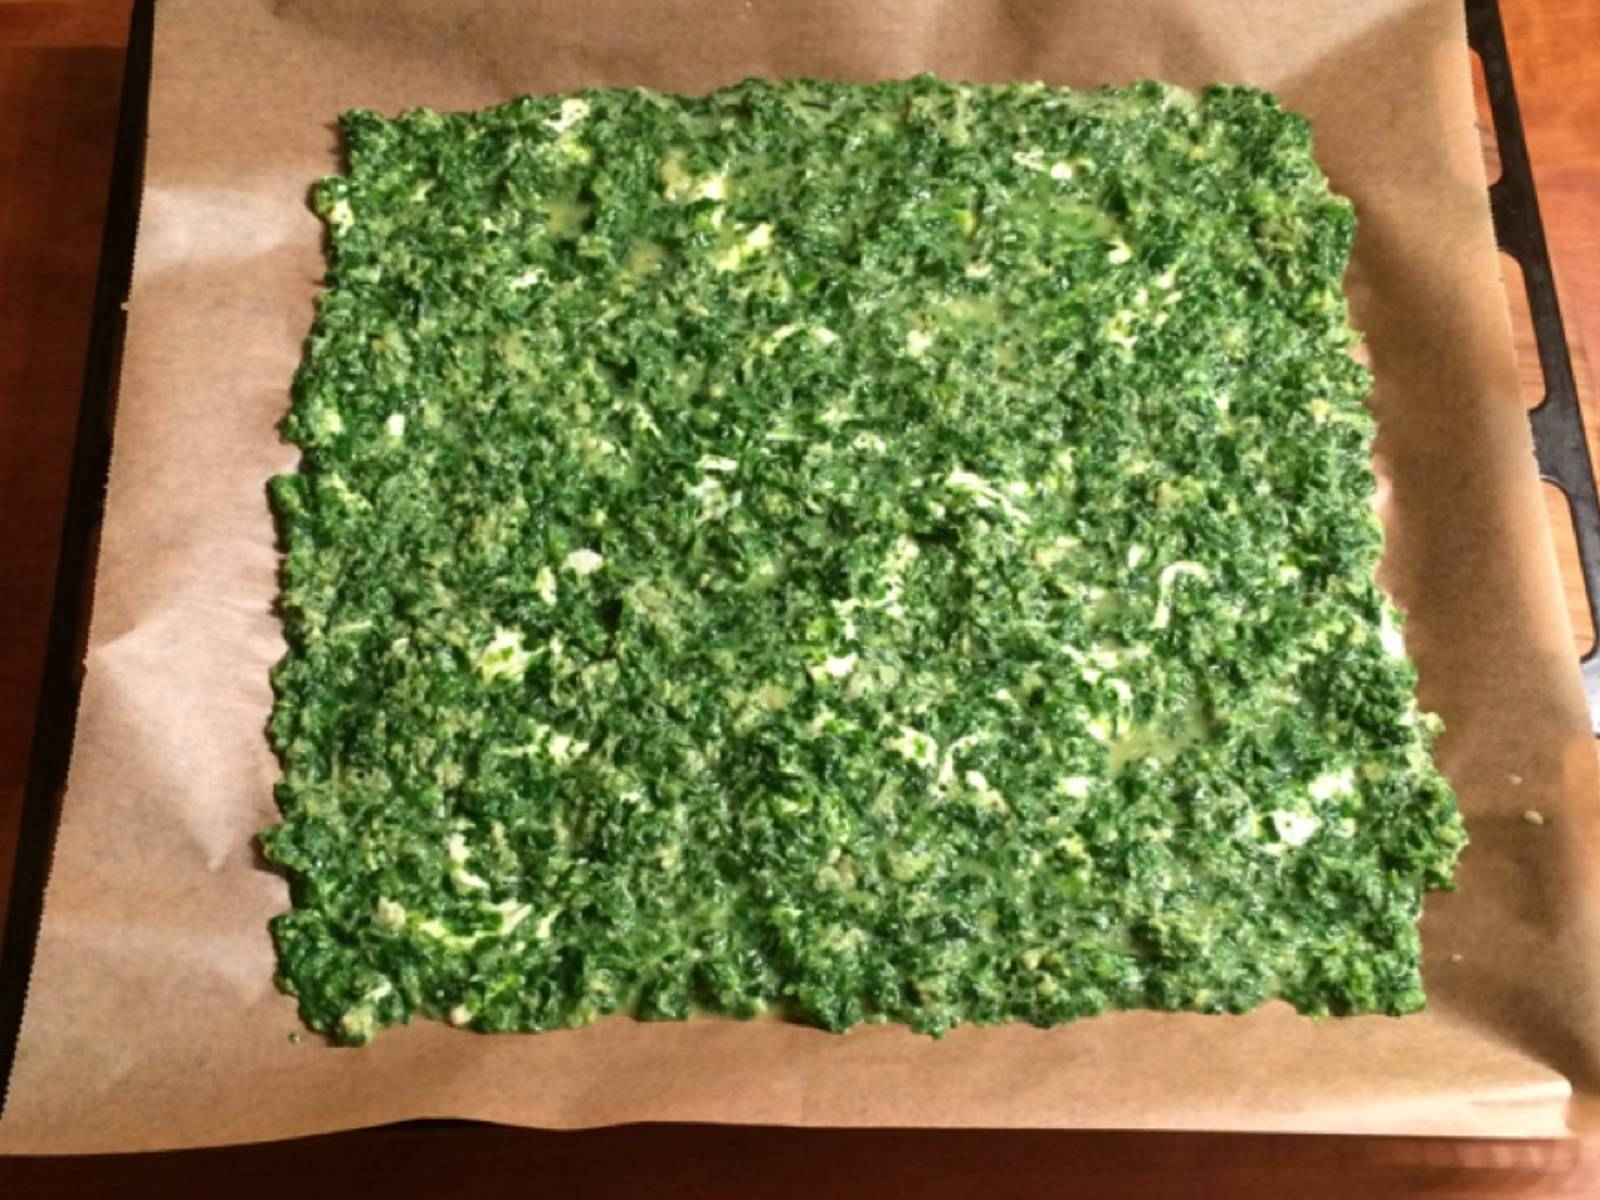 Spread the mixture on a baking sheet lined with parchment paper and bake at 200°C/390°F for approx. 15 min.